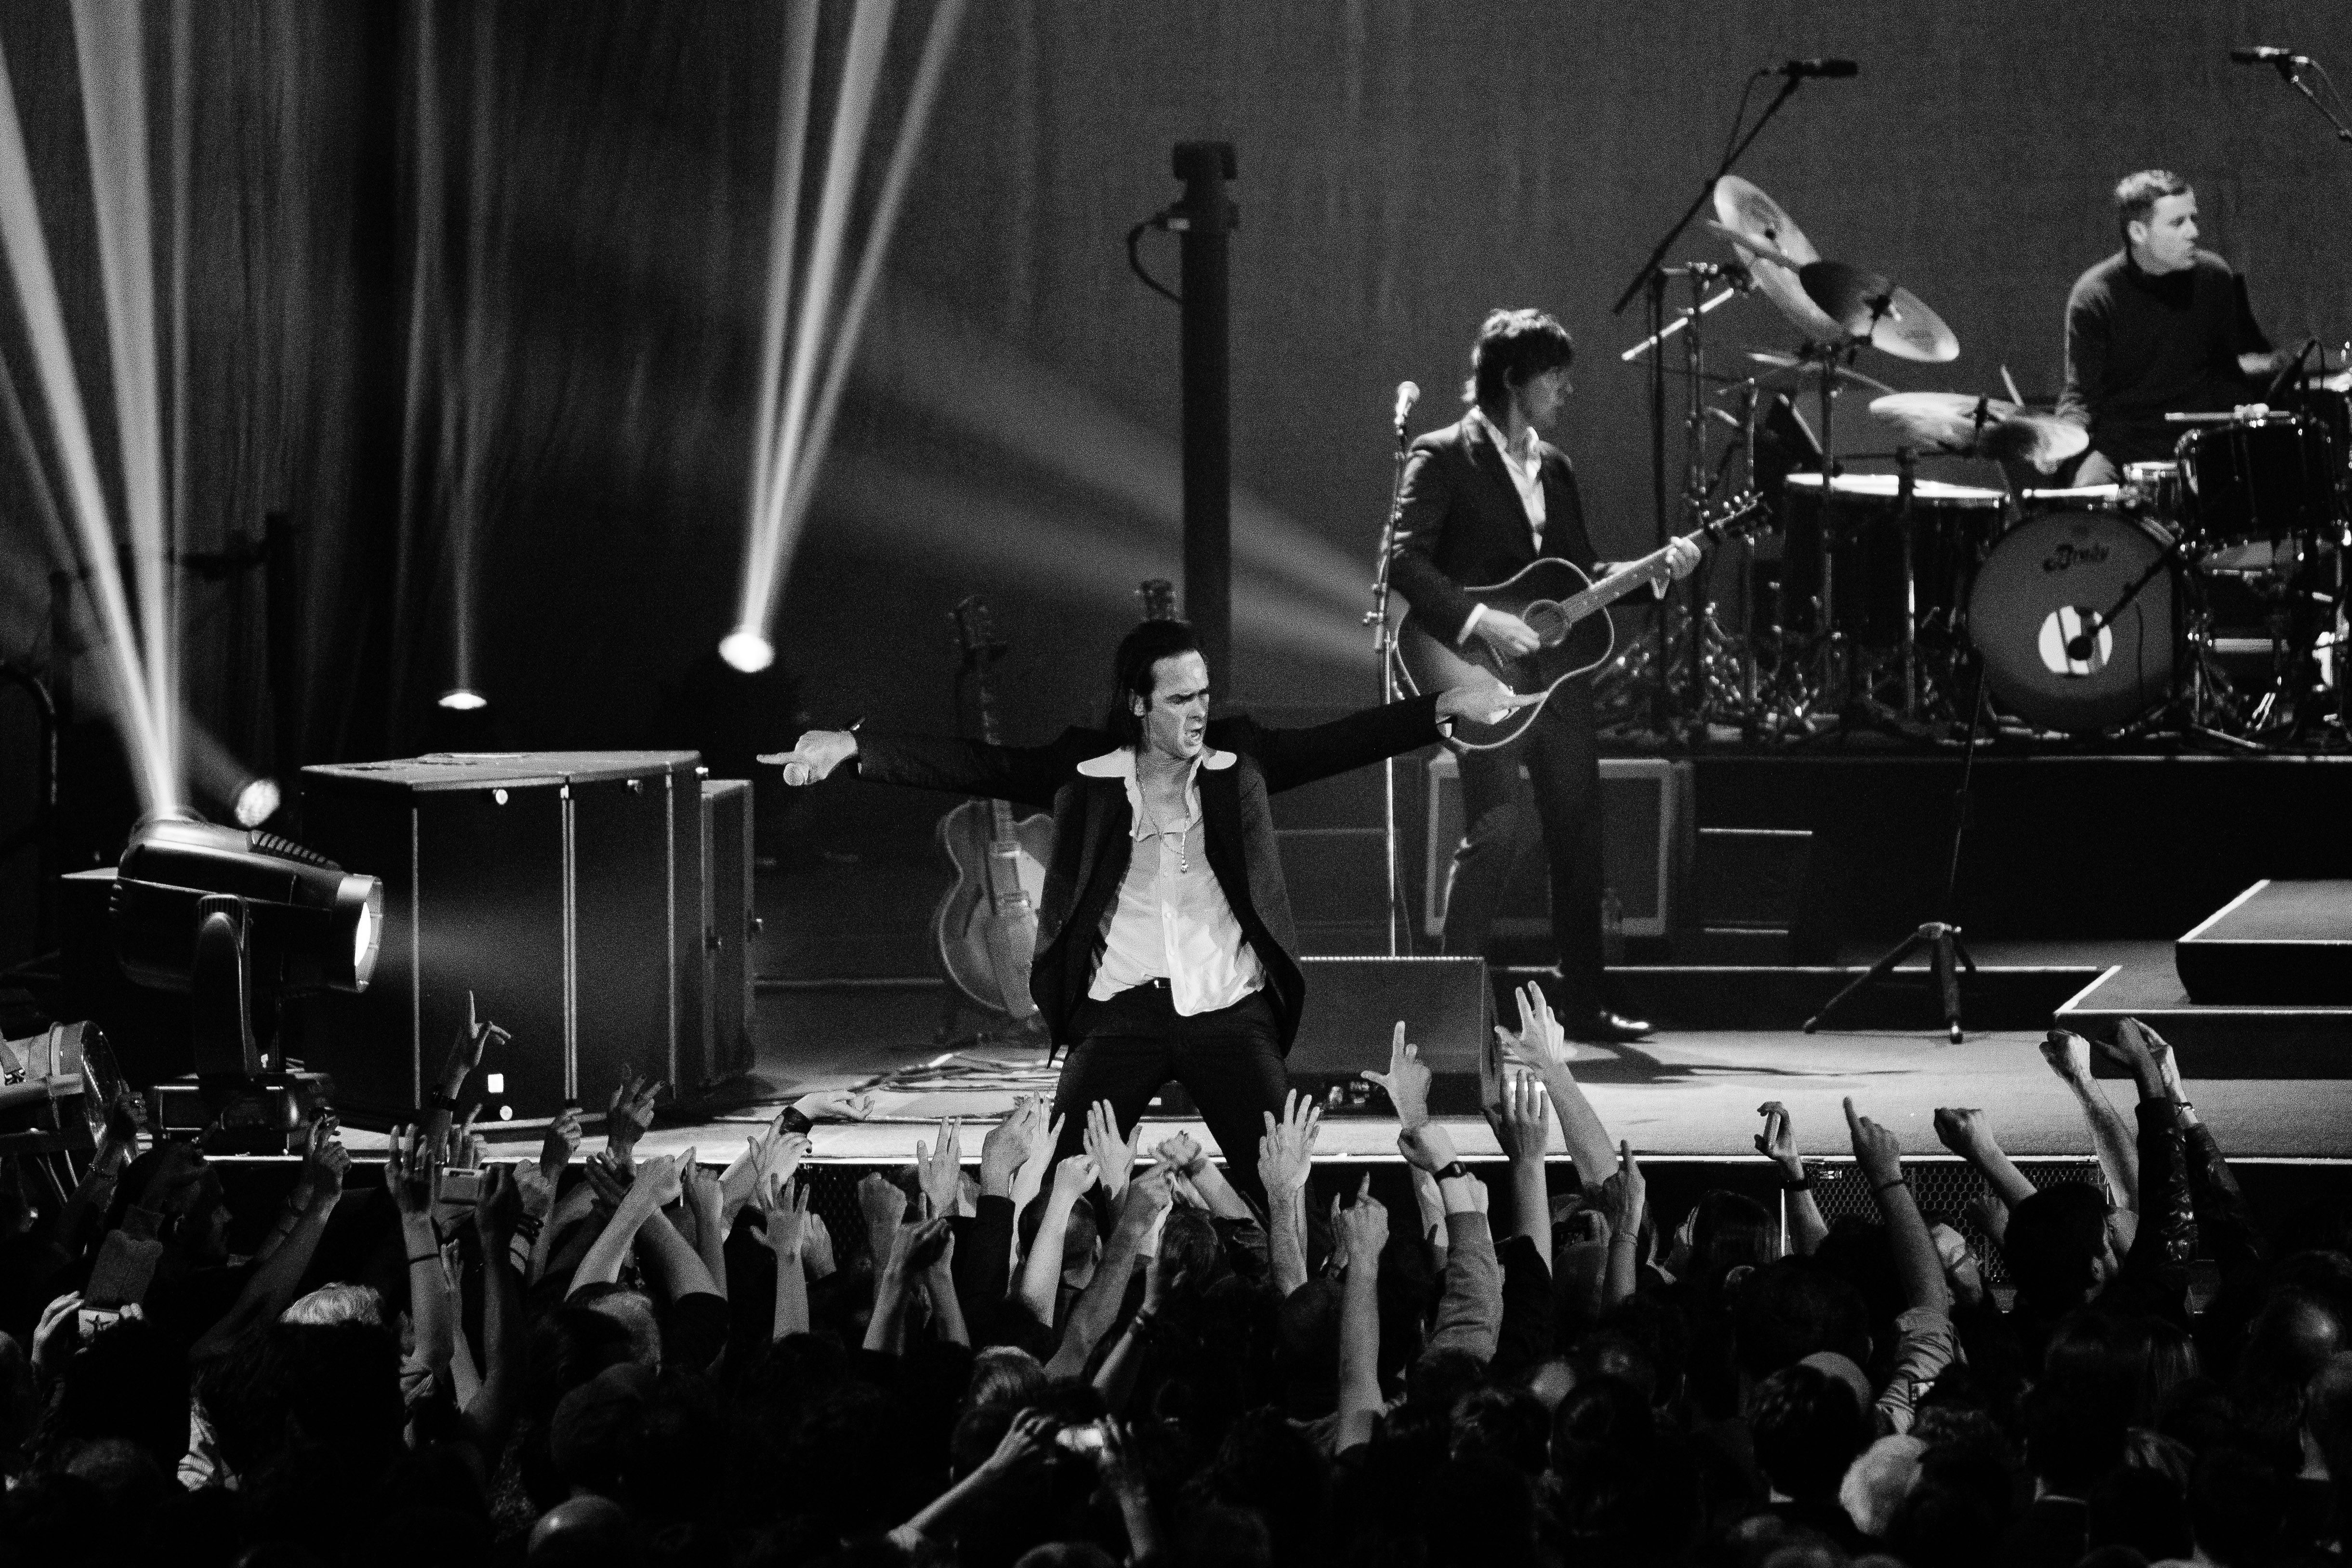 Nick Cave & The Bad Seeds by Jason Williamsonbw